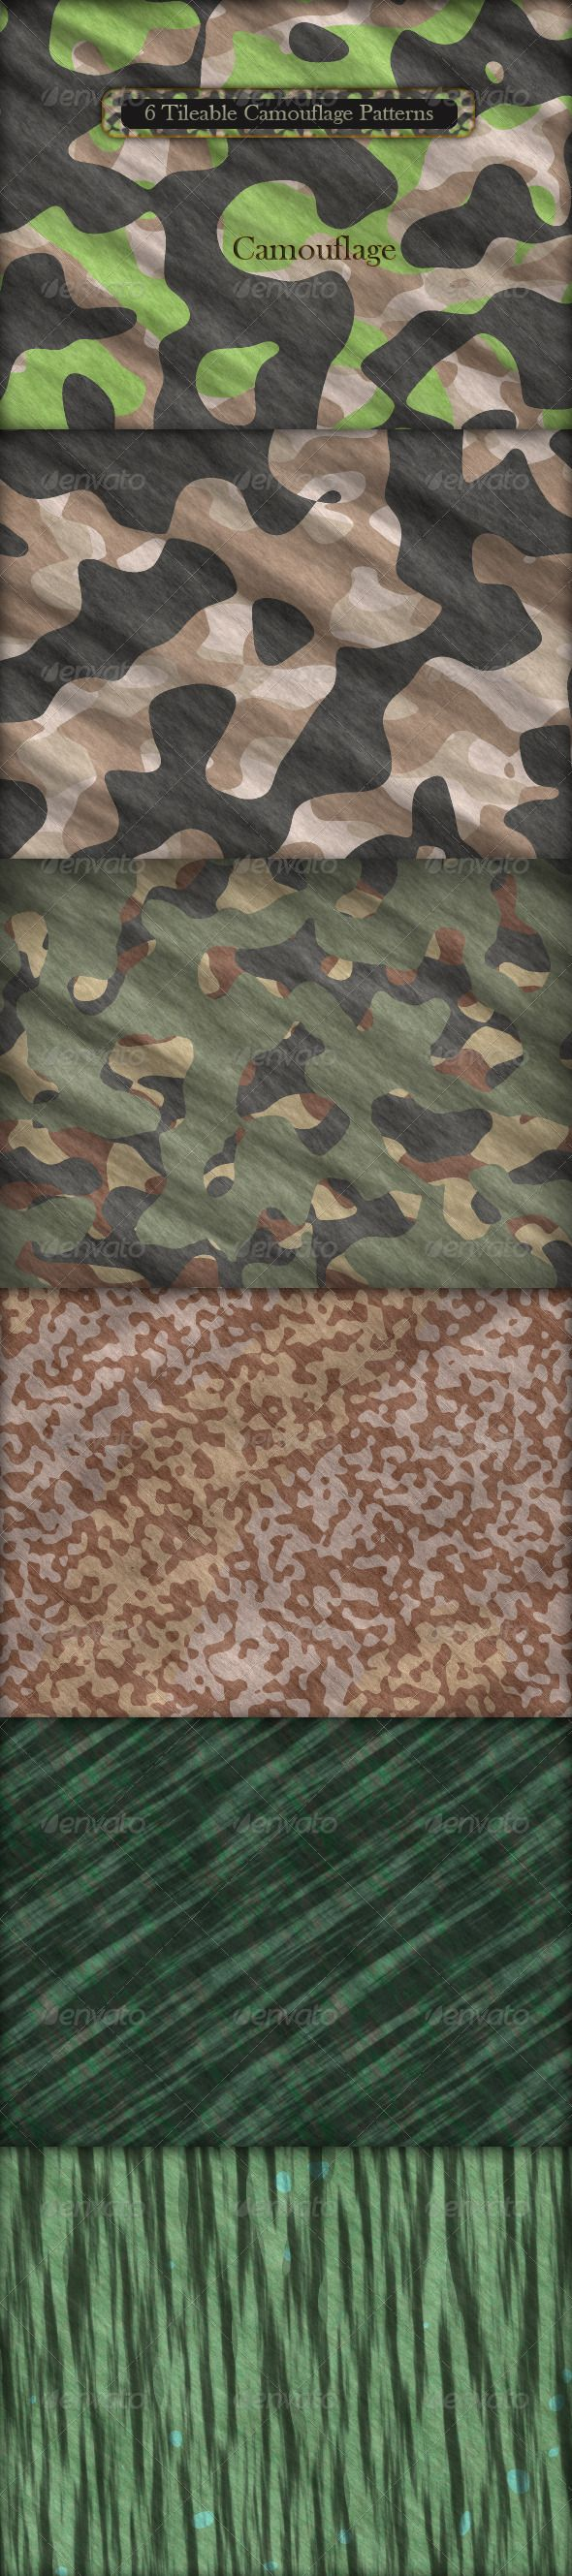 """6 Tileable Camouflage Patterns  #GraphicRiver         6 Tileable Realistic Camouflage Texture Patterns   Includes:   1 .PAT File with 6 patterns in resolution (600px * 600px)   6 .PSD Files (1600px * 1200px) with 3 layers: curves, gradient and pattern   6 Camouflage Tiles (600px * 600px) in .JPG Format   .PDF Help File """"How to install Patterns in Adobe Photoshop""""   Njoy!      Created: 3March11 Add-onFilesIncluded: LayeredPSD #PhotoshopPAT MinimumAdobeCSVersion: CS Tags: 3dartist #army…"""